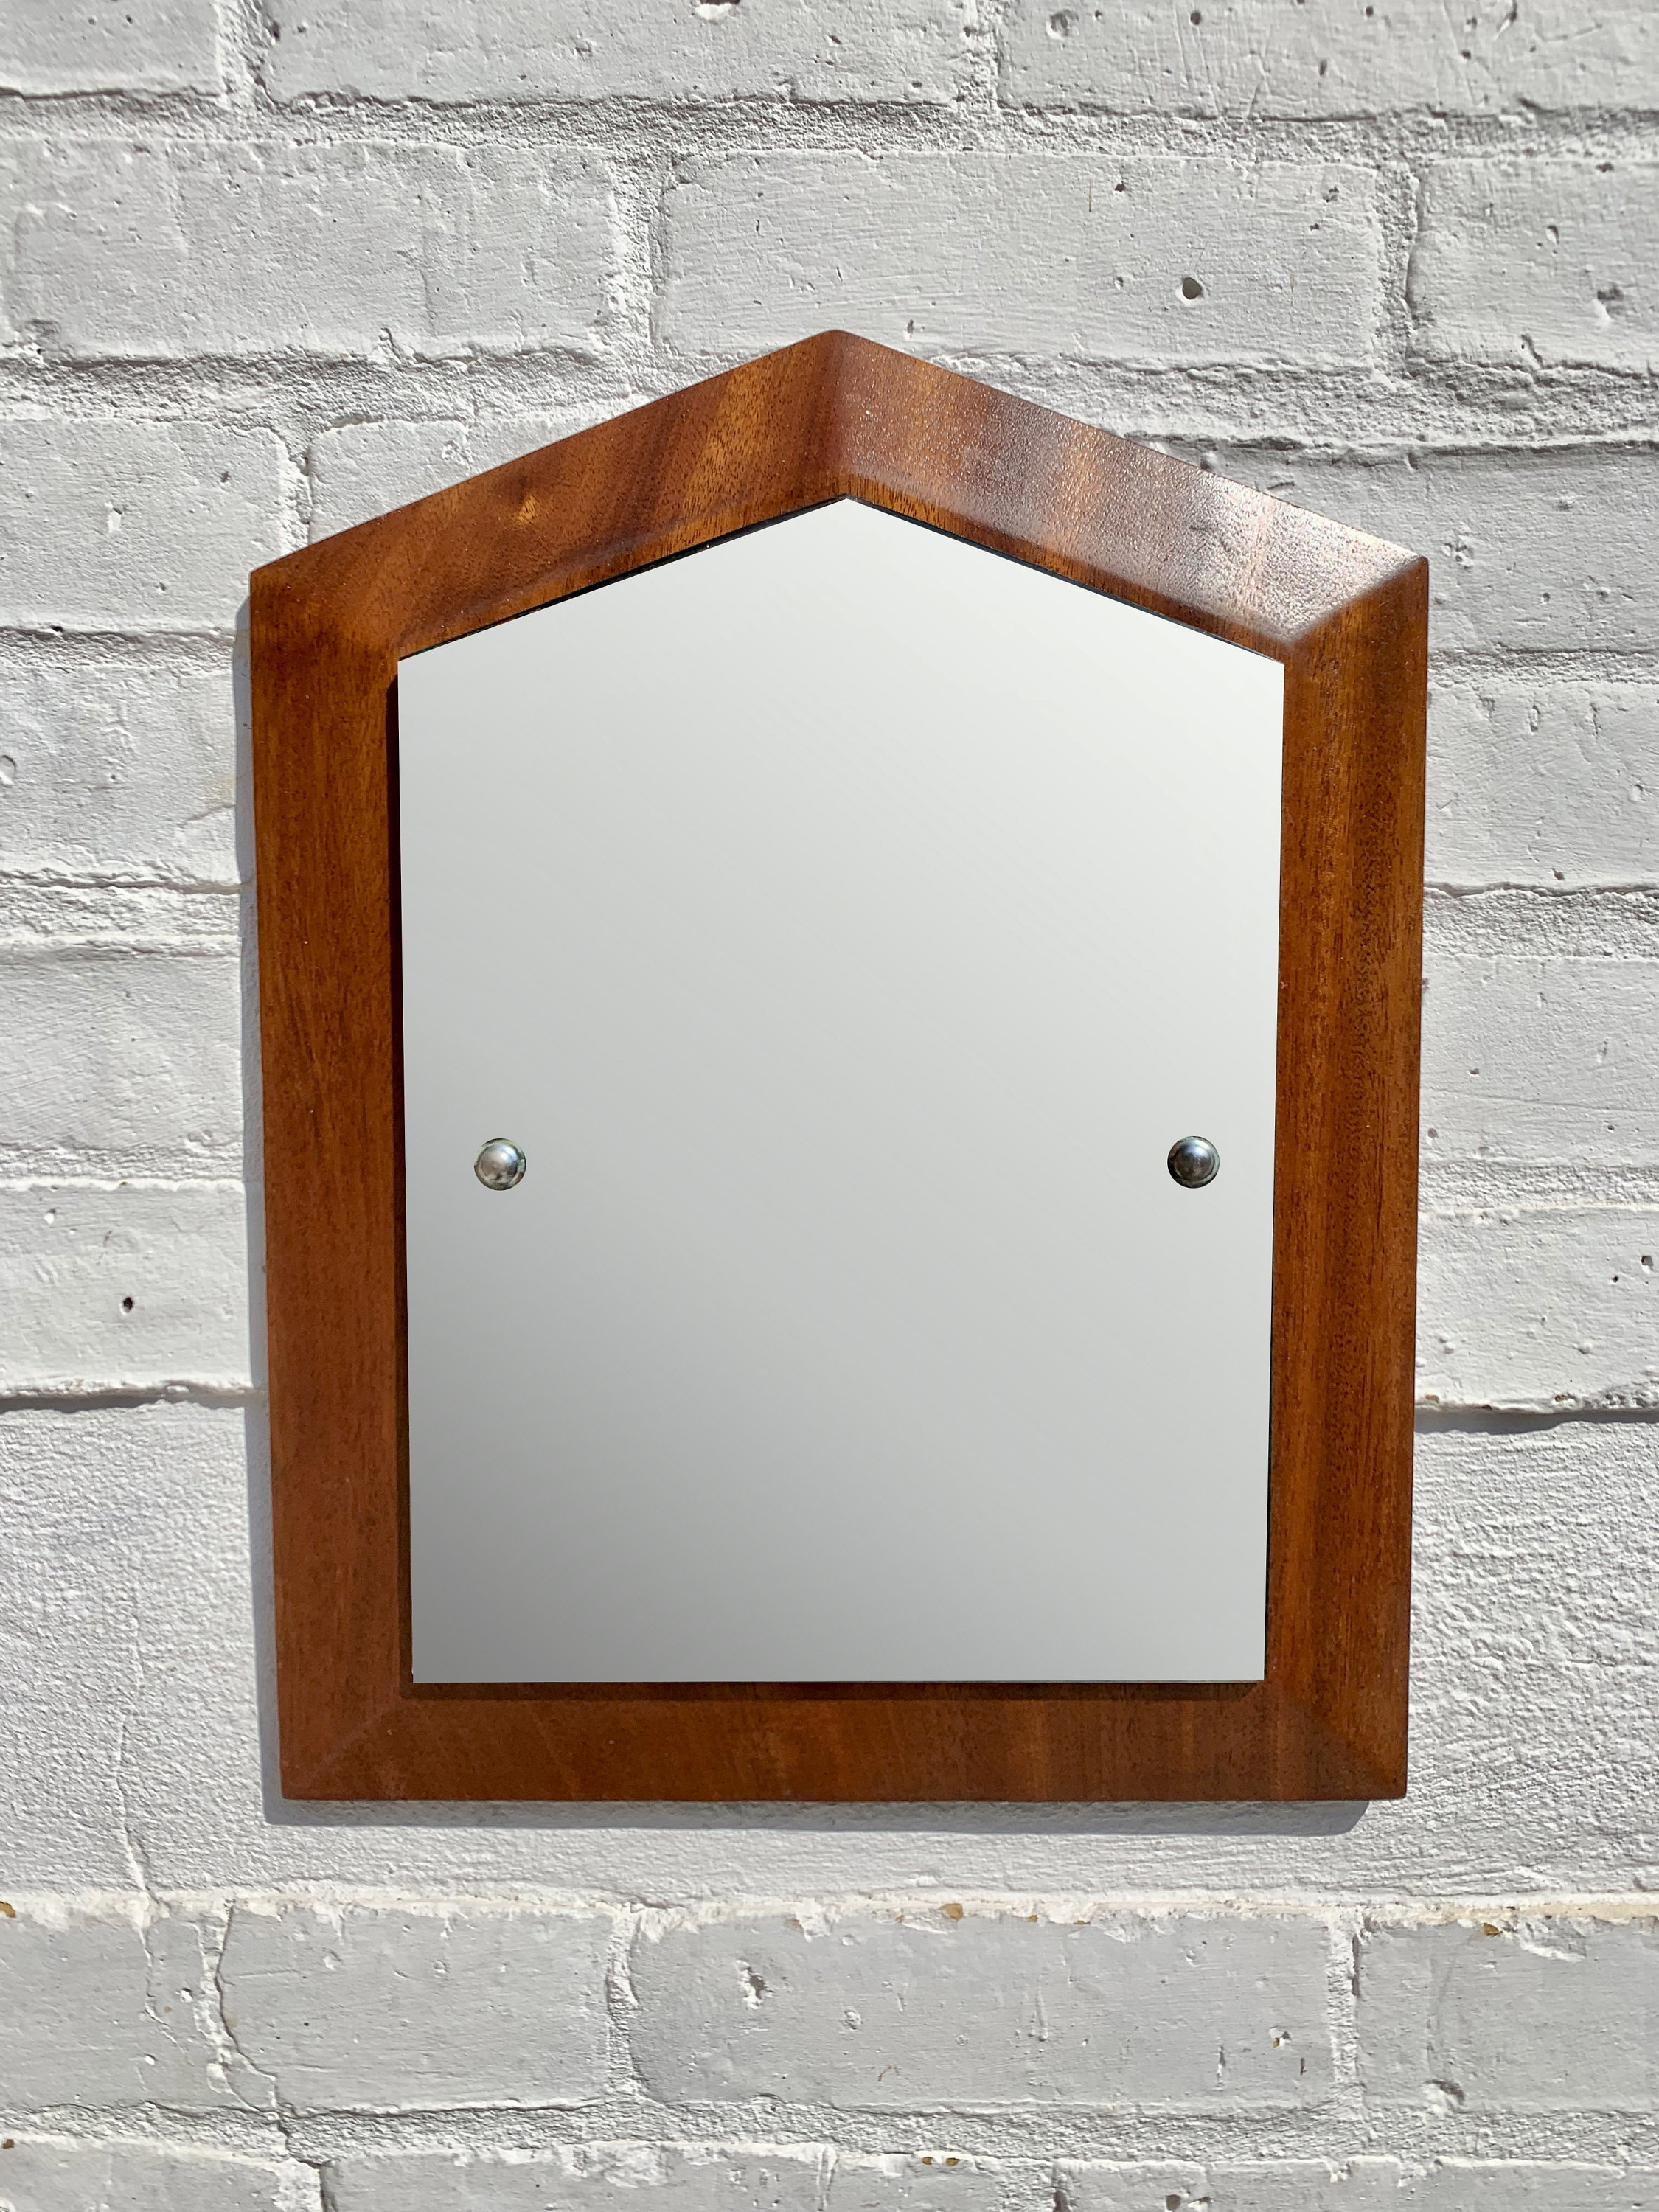 Vintage Small Wall Mirror Teak Frame With Regard To Recent Small Vintage Wall Mirrors (View 17 of 20)